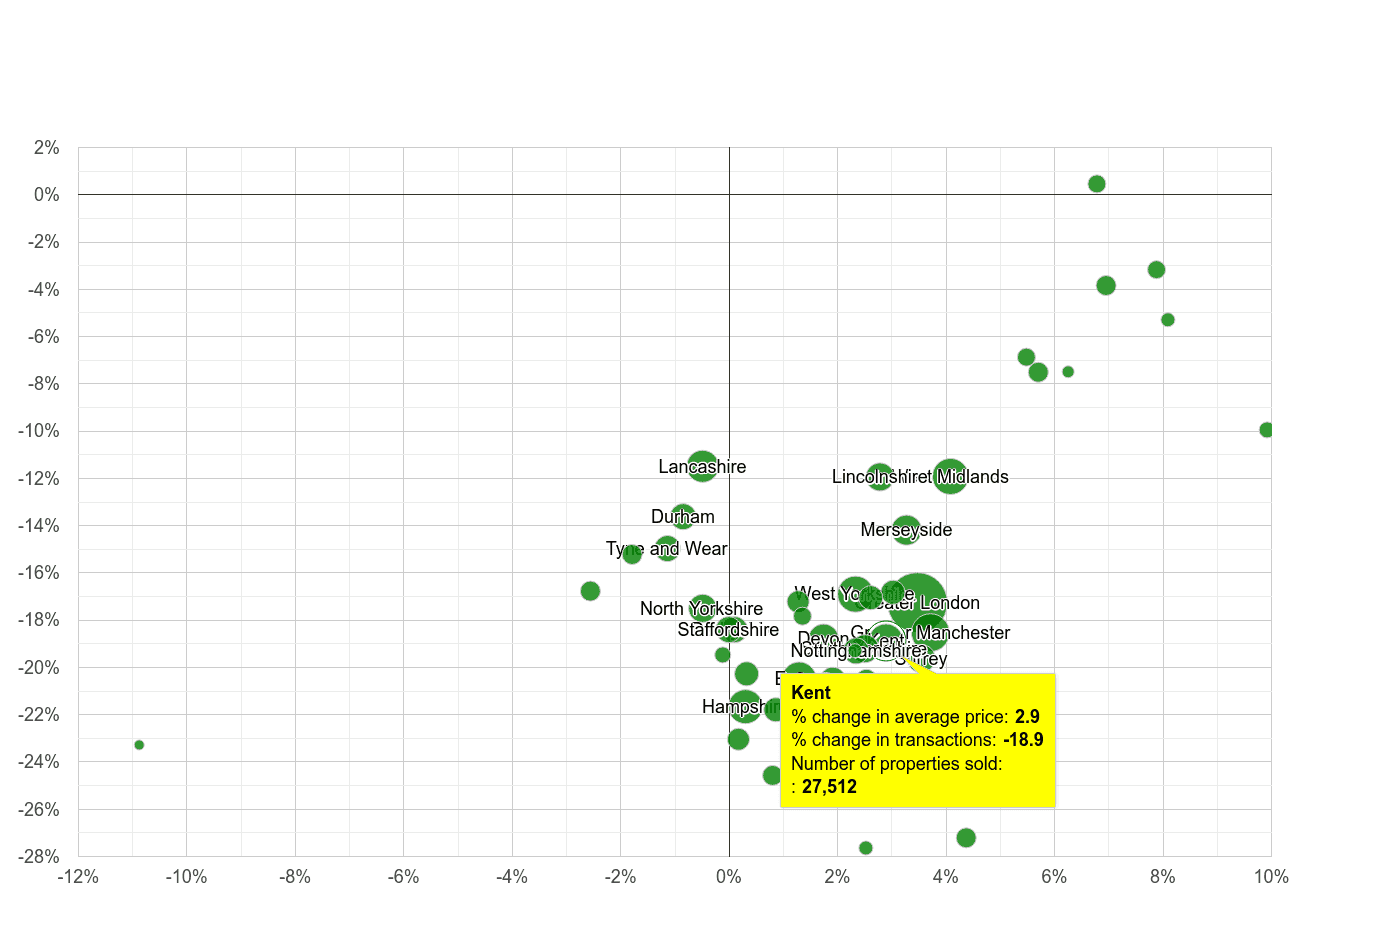 Kent property price and sales volume change relative to other counties